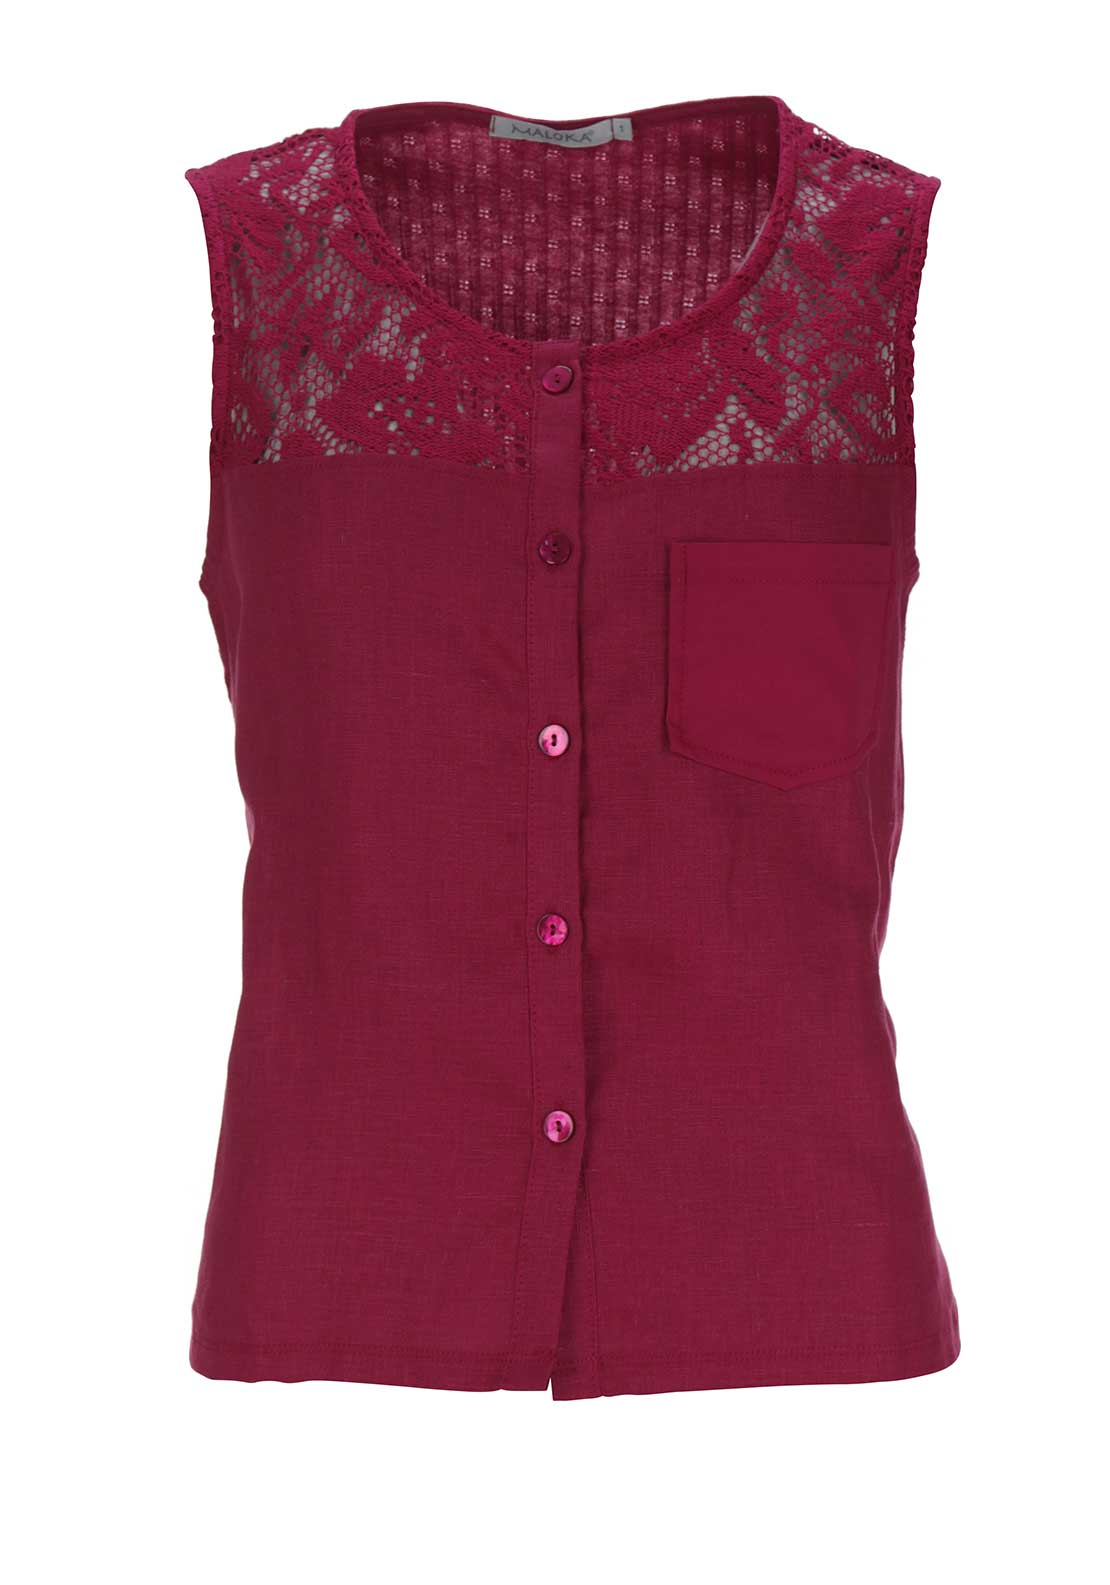 Maloka Amy Crochet Trim Button Through Sleeveless Top, Bougainvillea Pink